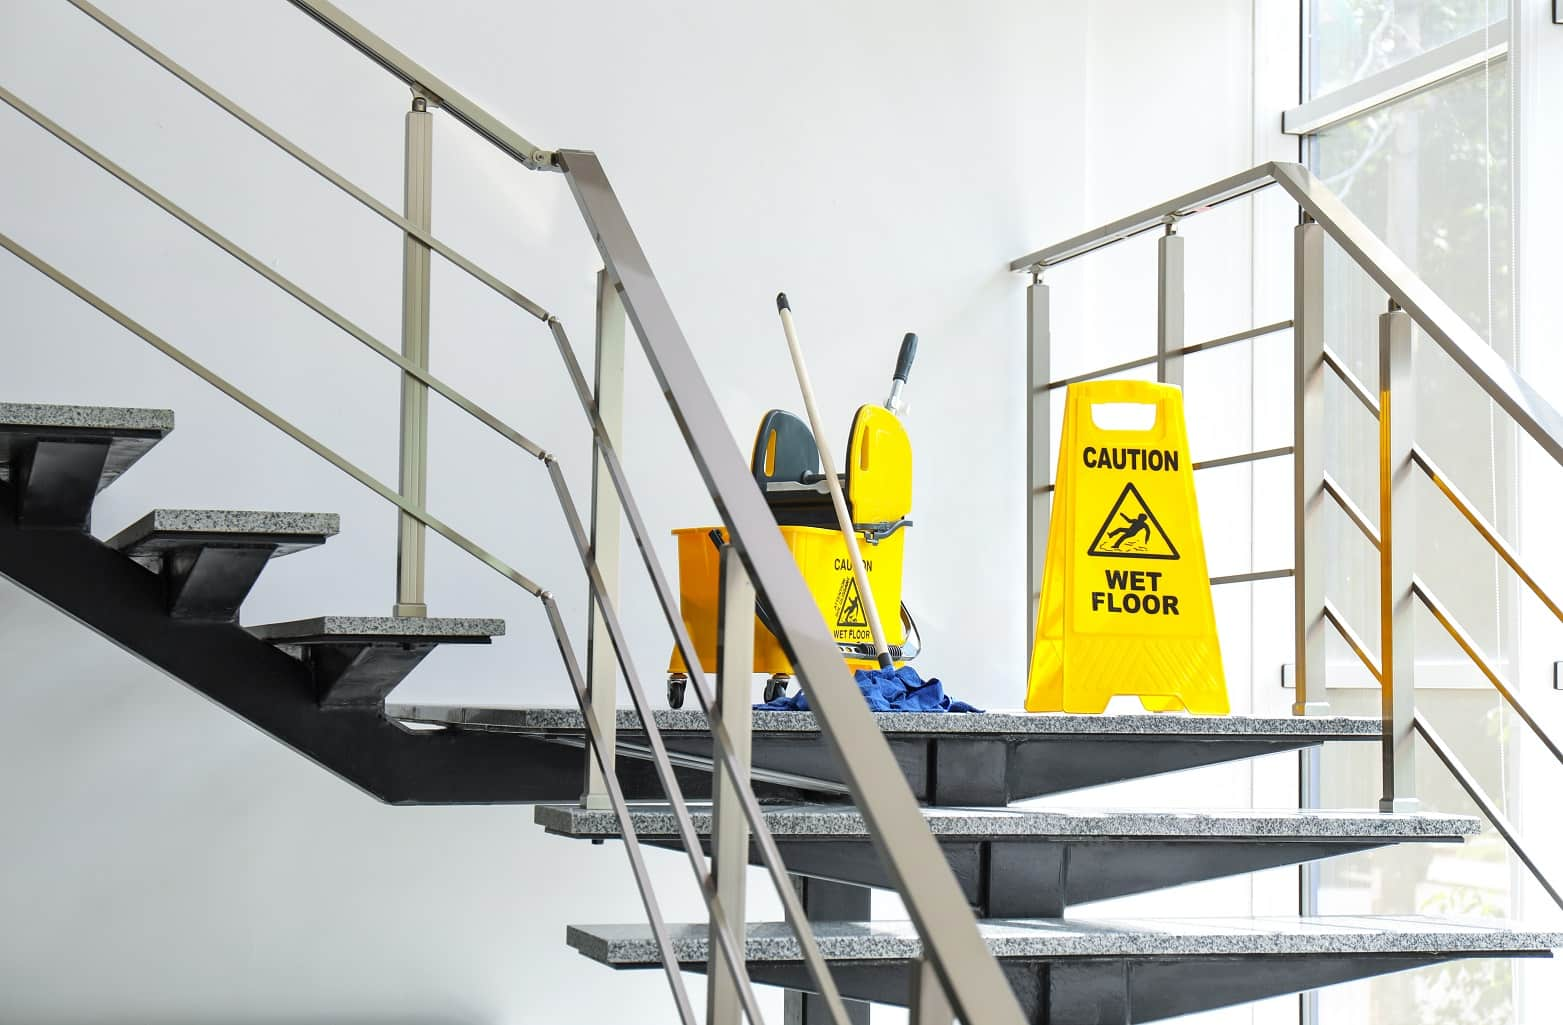 5 Ways To Prevent Falls, Slips, And Trips On Your Staircase. Cleaning the stairs